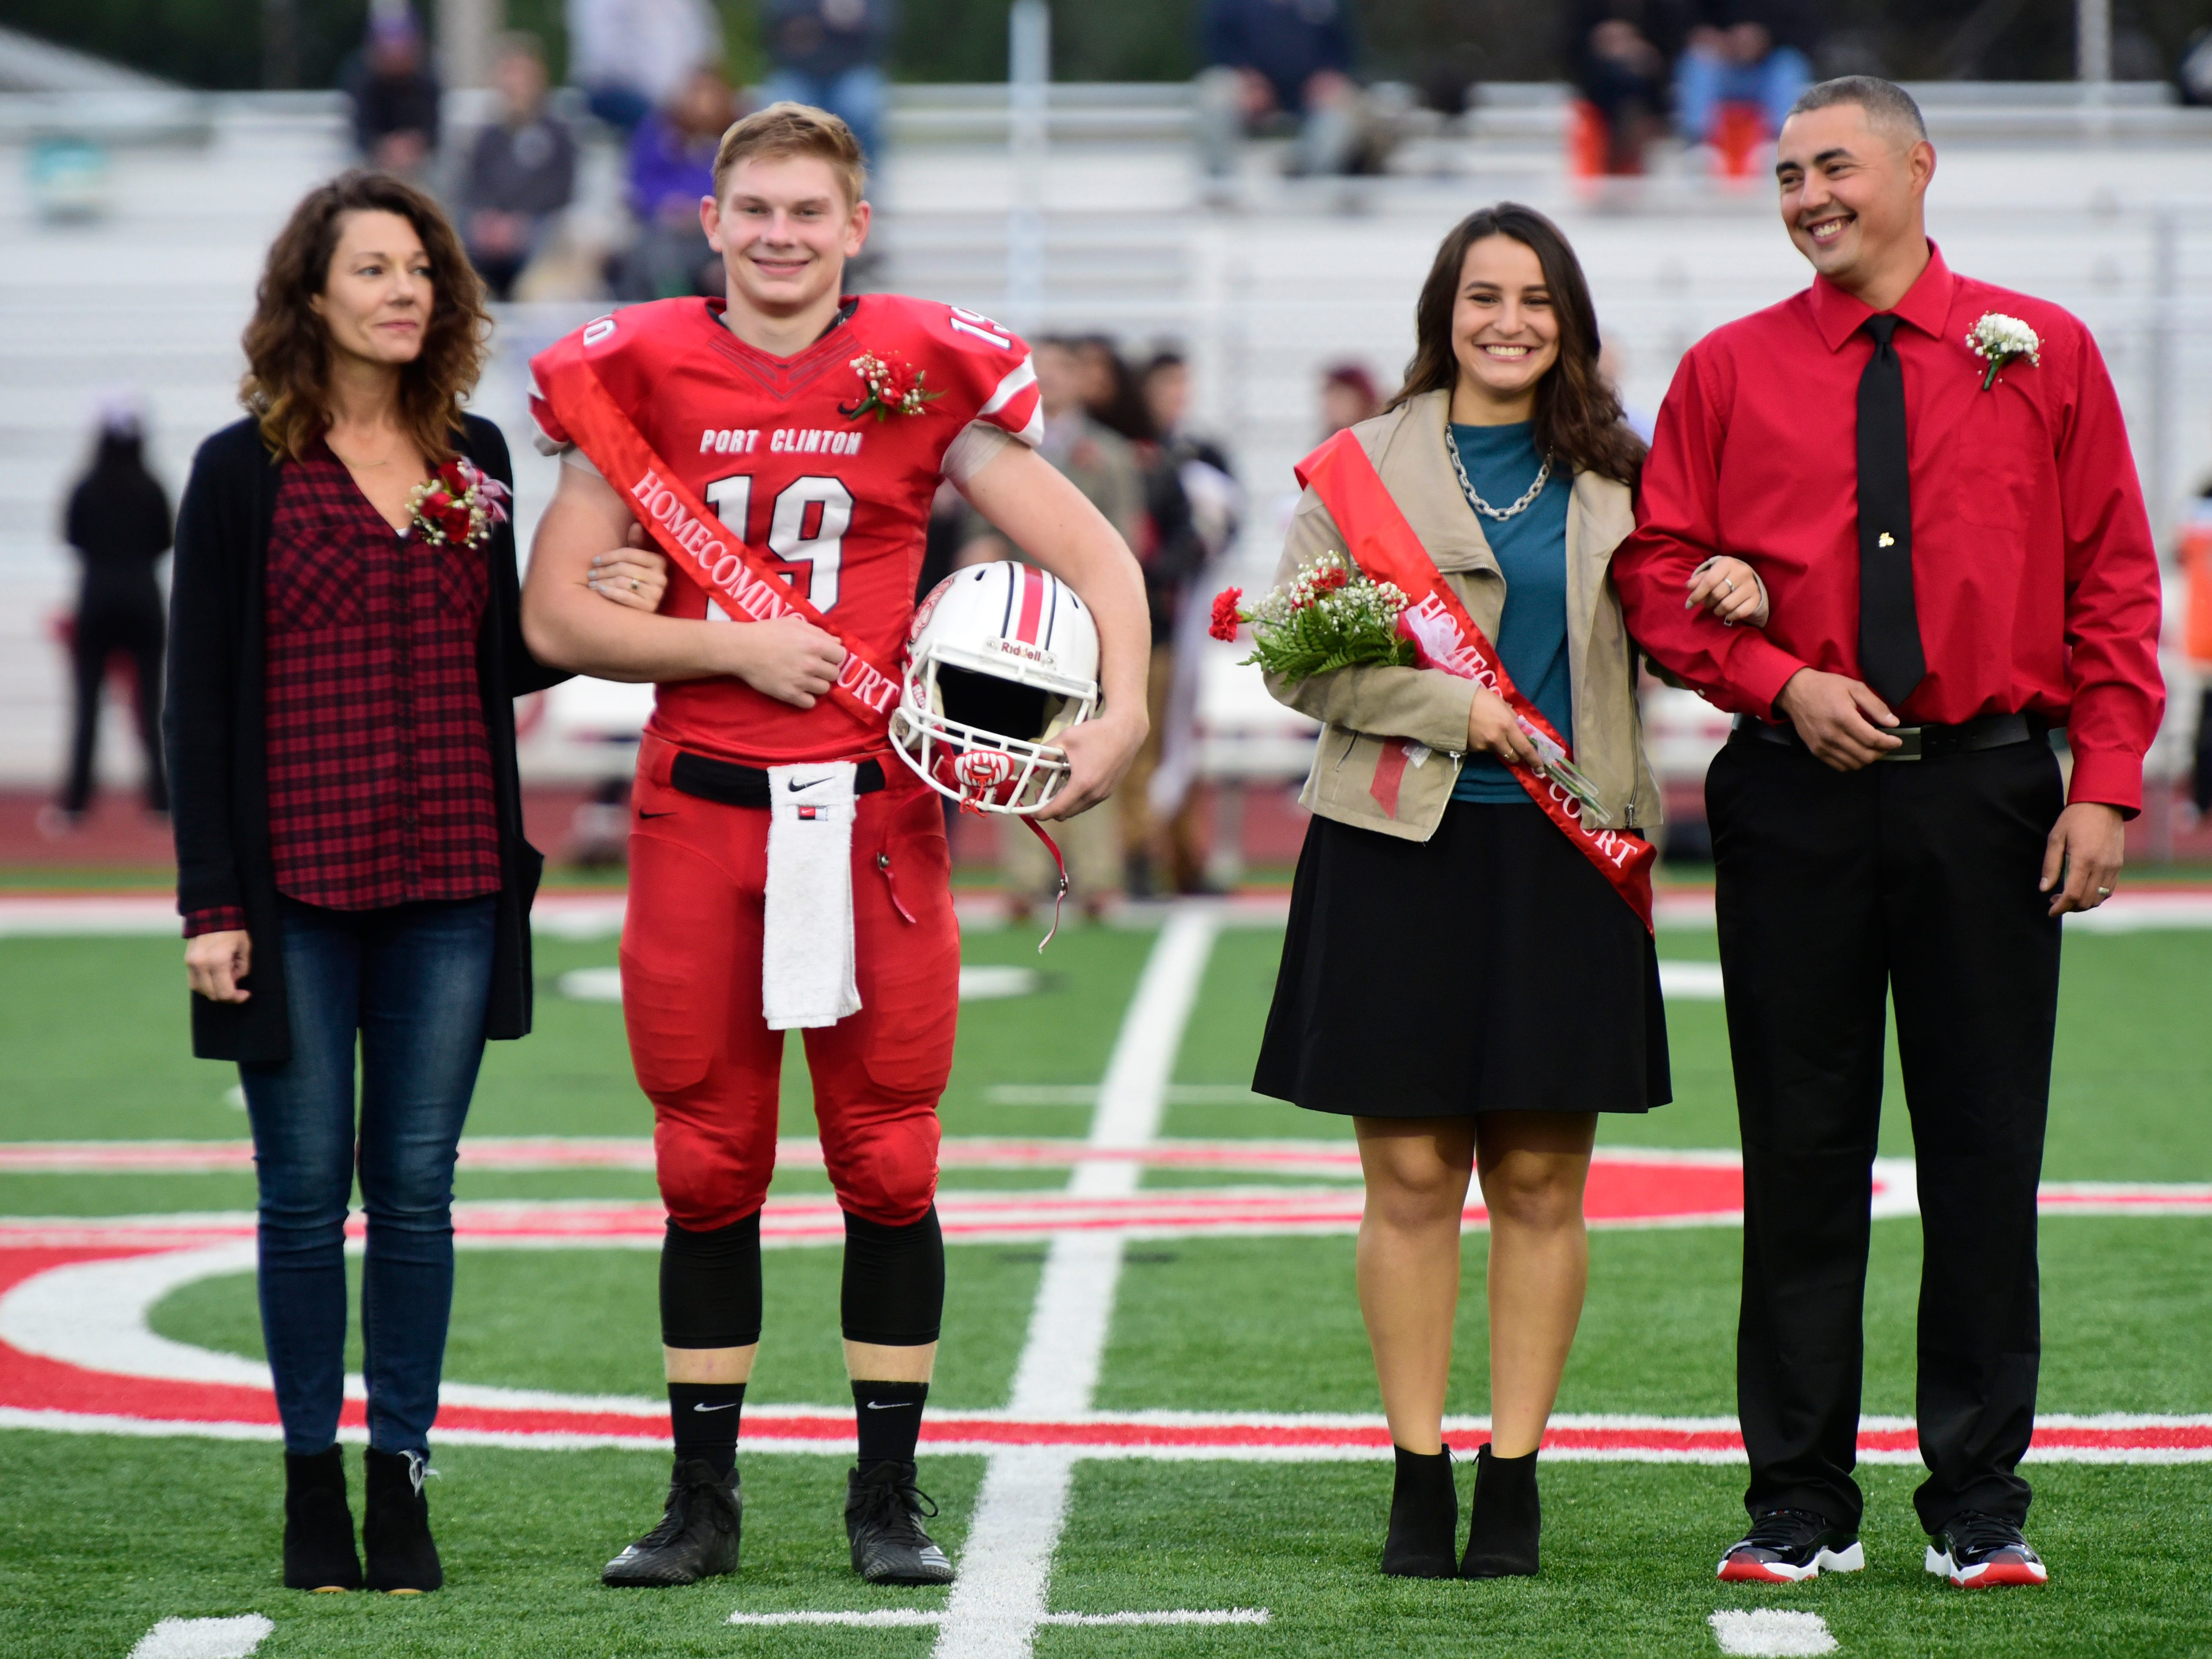 Port Clinton High School 2018 senior homecoming king Max Brenner, left, and attendant Marisol Fick.